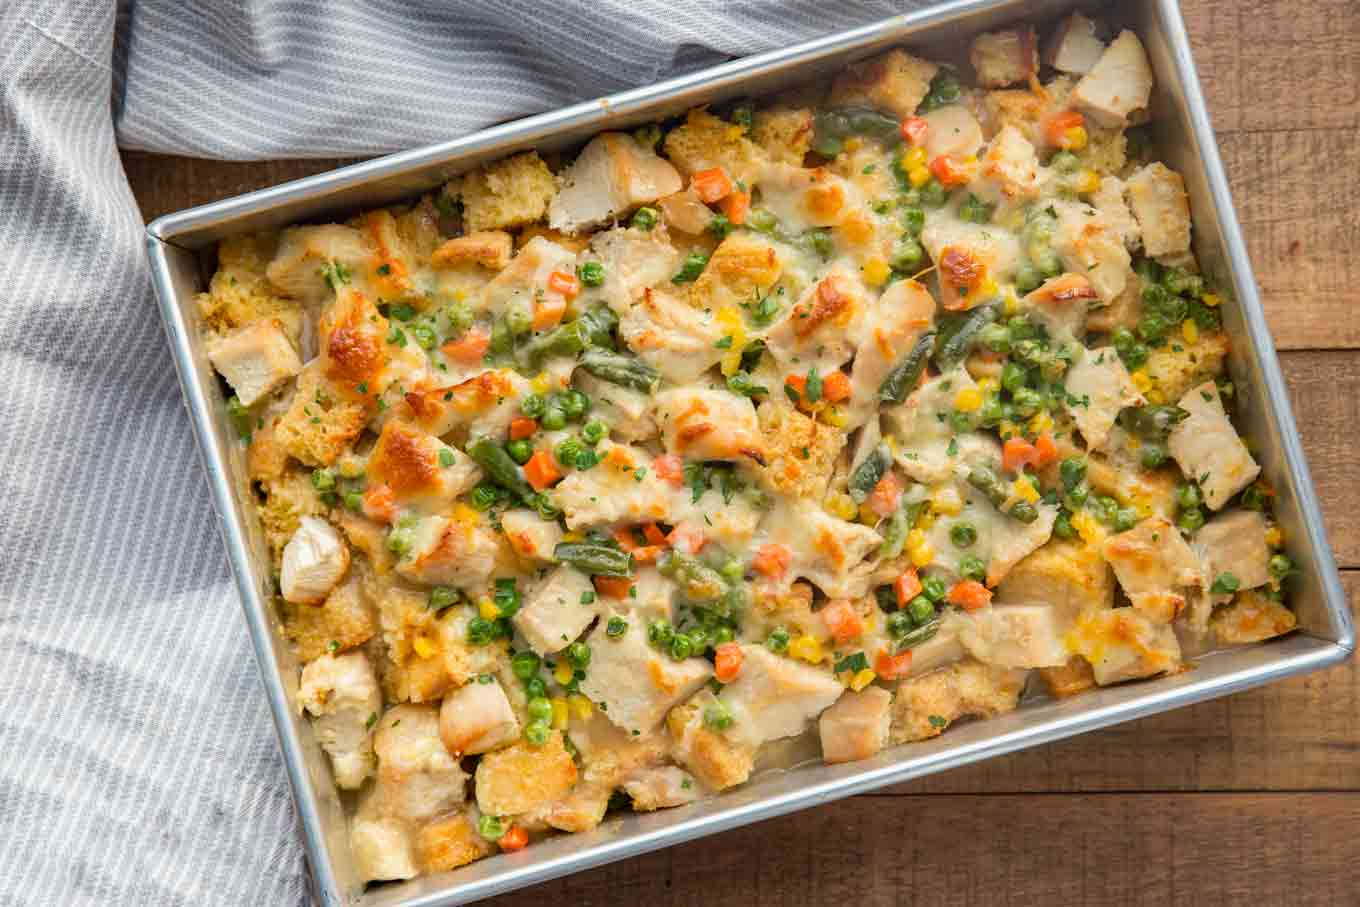 Thanksgiving Turkey Casserole